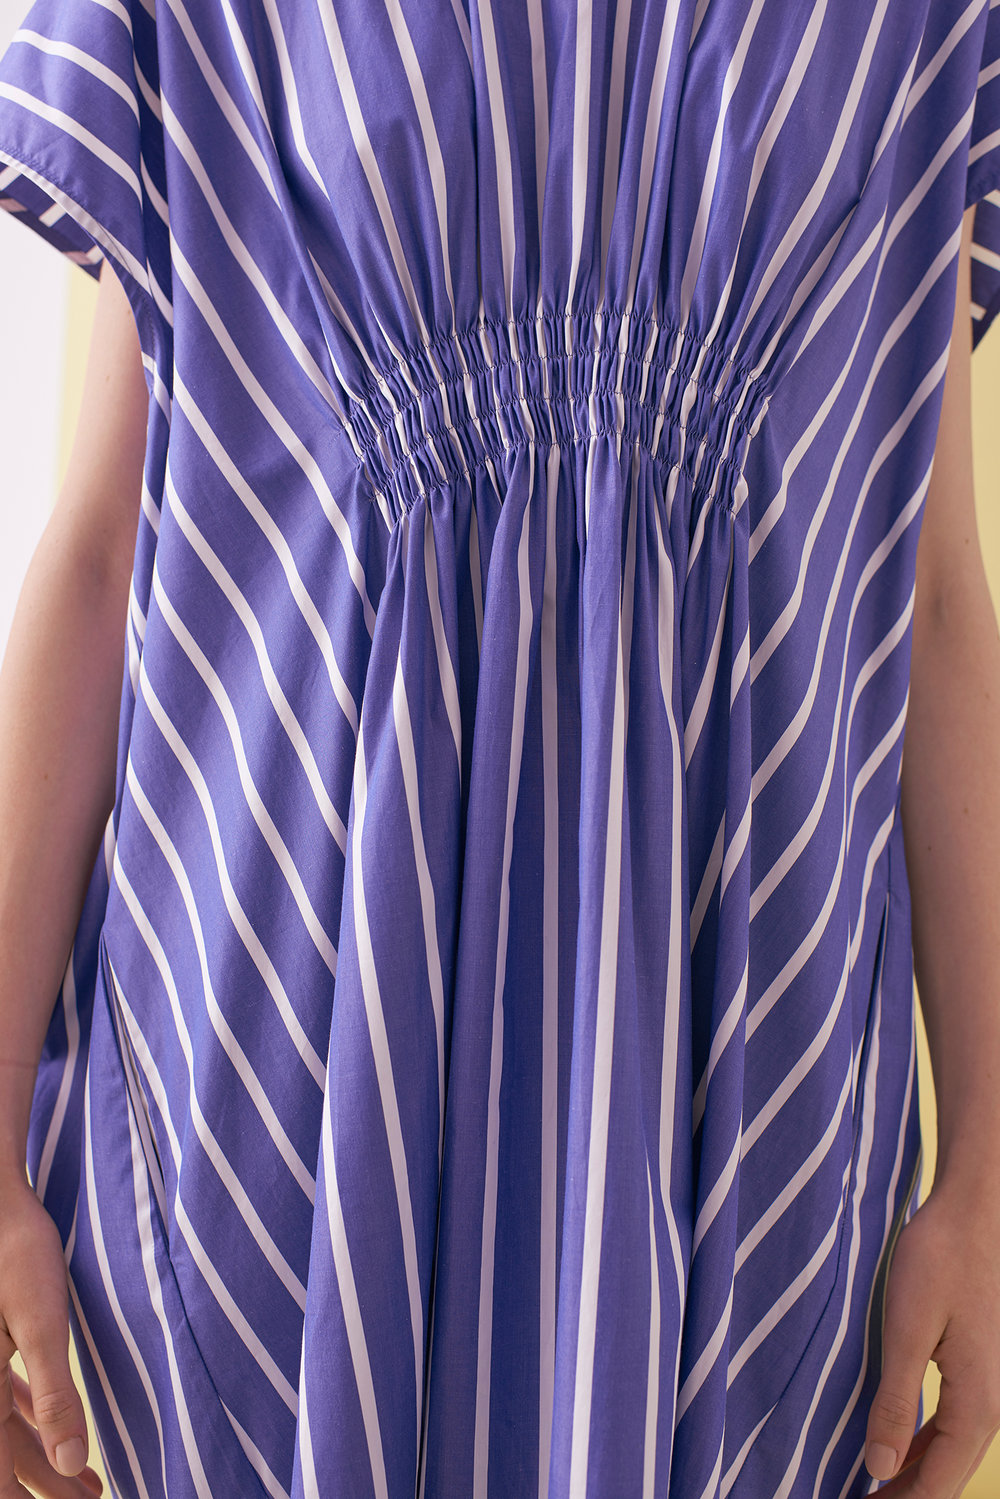 Sarah_Swann_SS17_01_Striped_Shirring_Dress_CeruleanBlue_D01.jpg